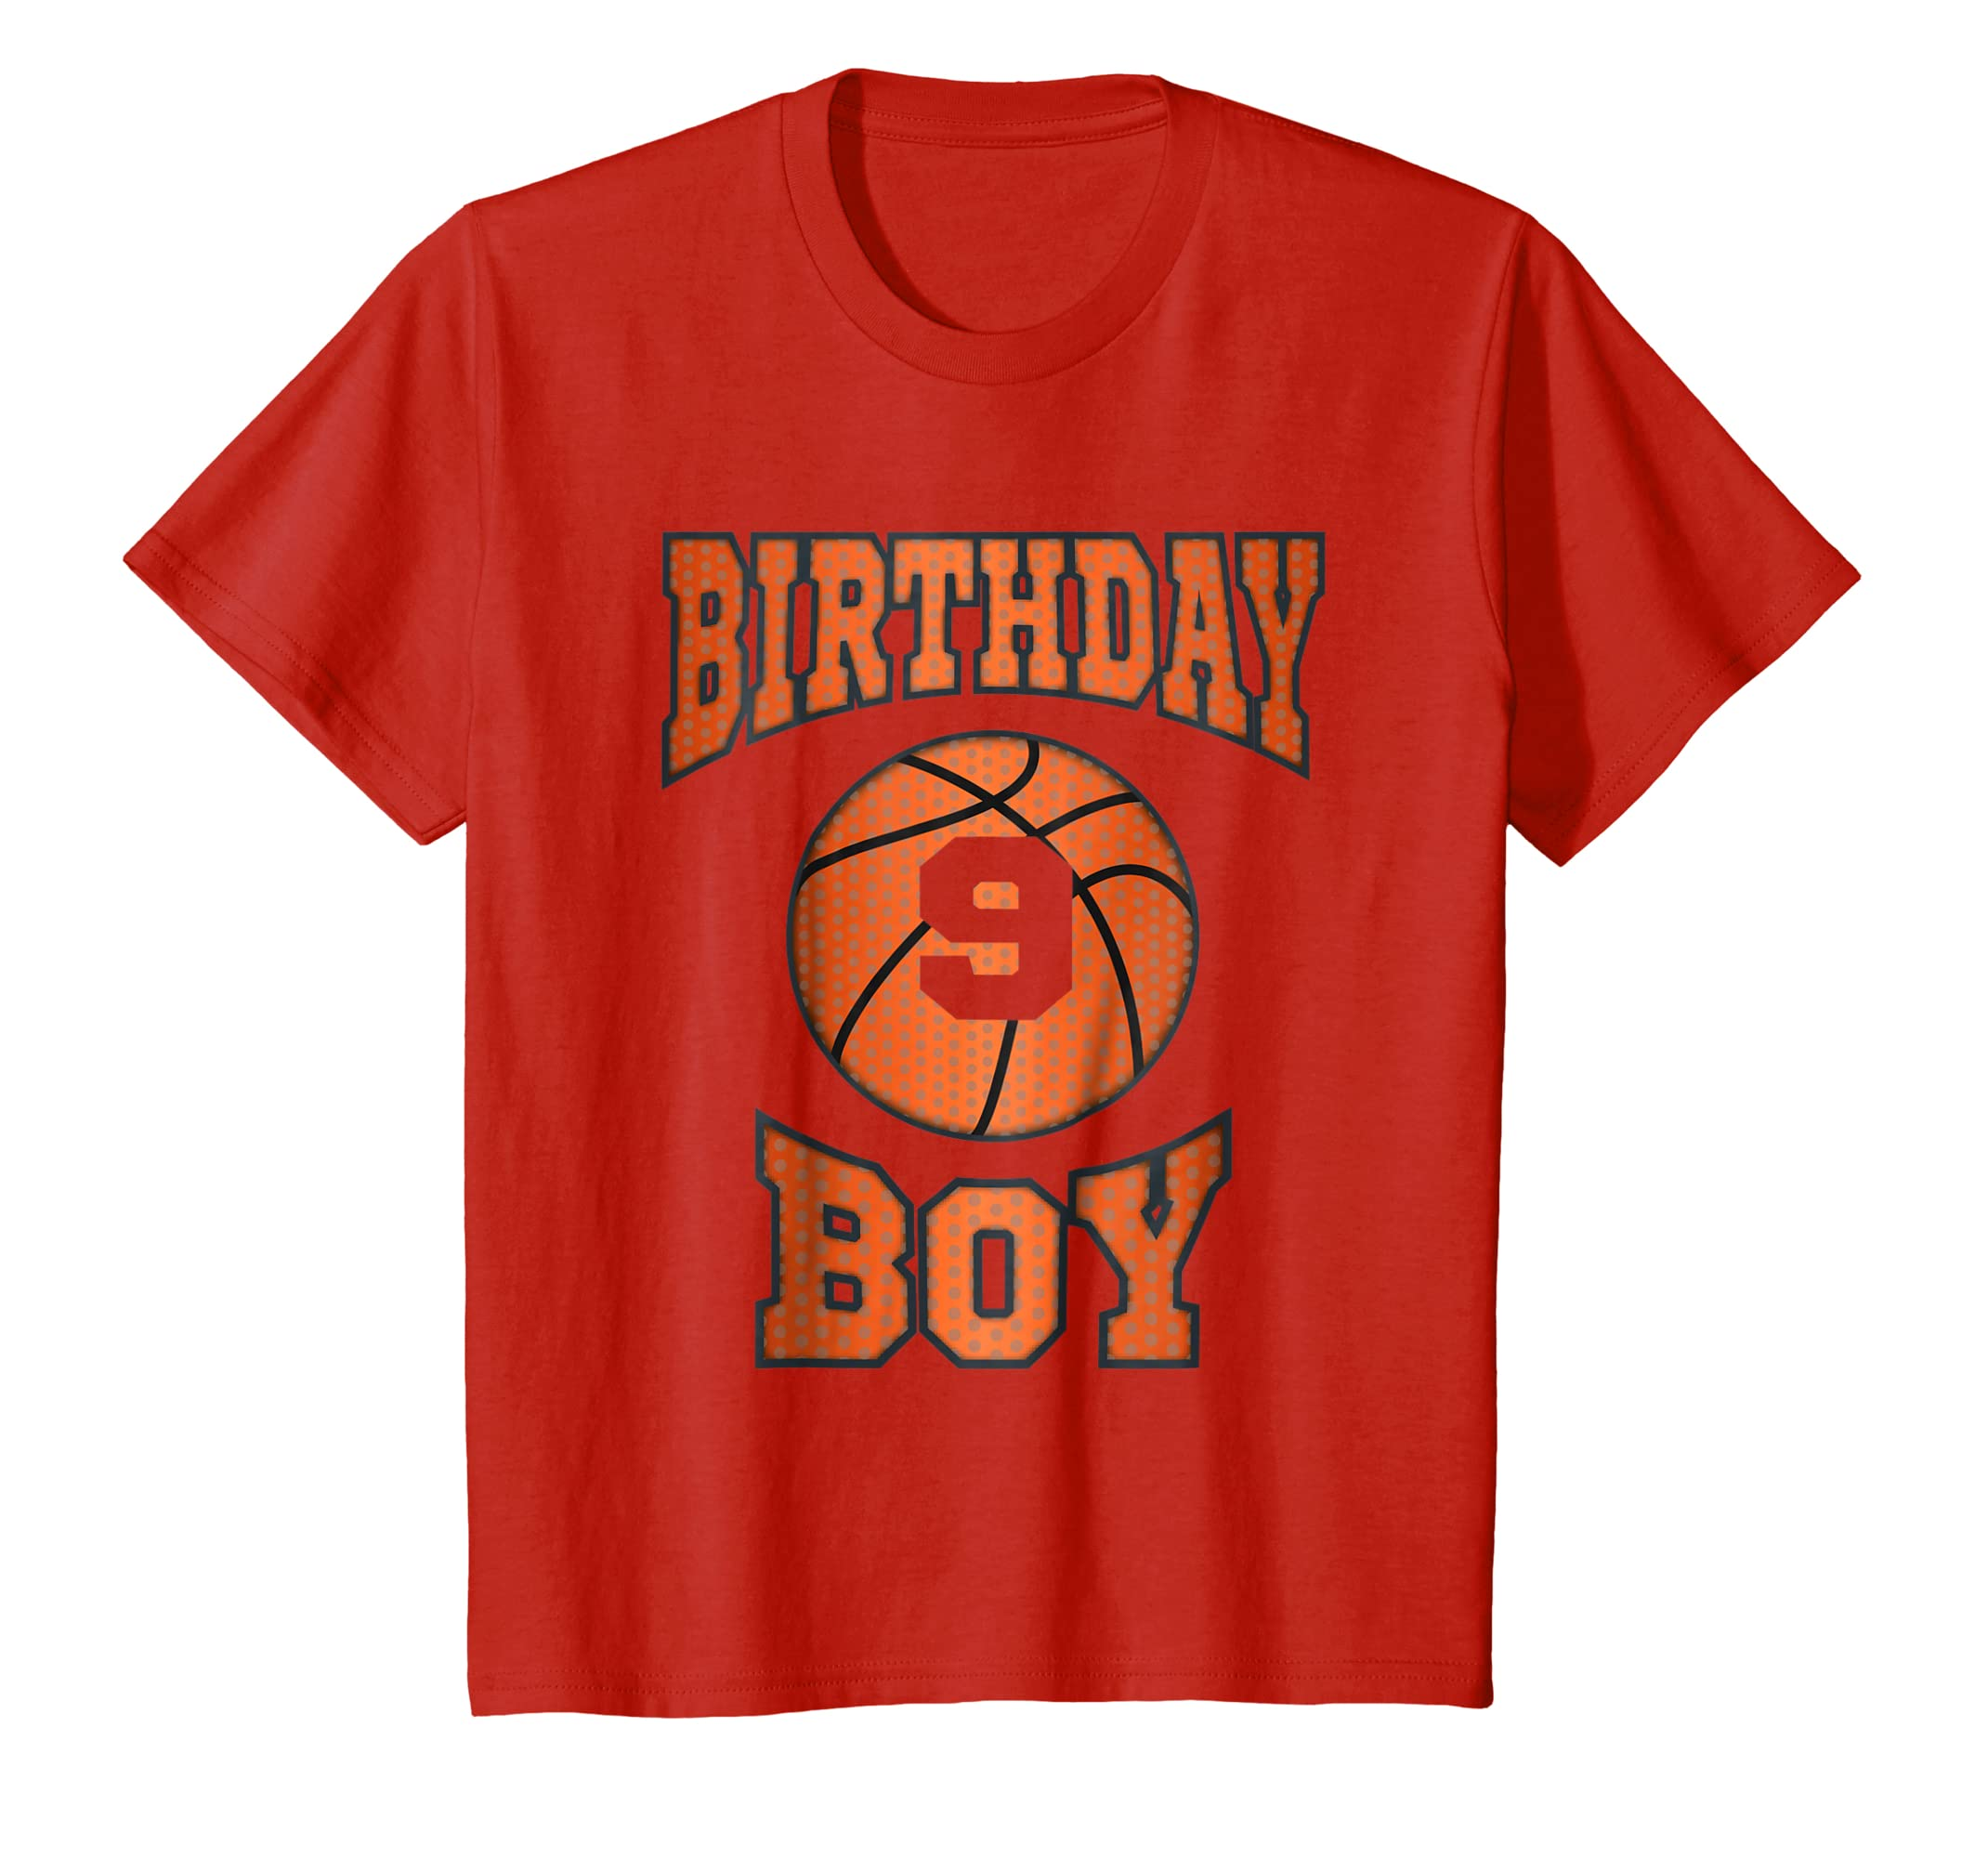 Amazon Kids 9th Birthday Shirt Boy